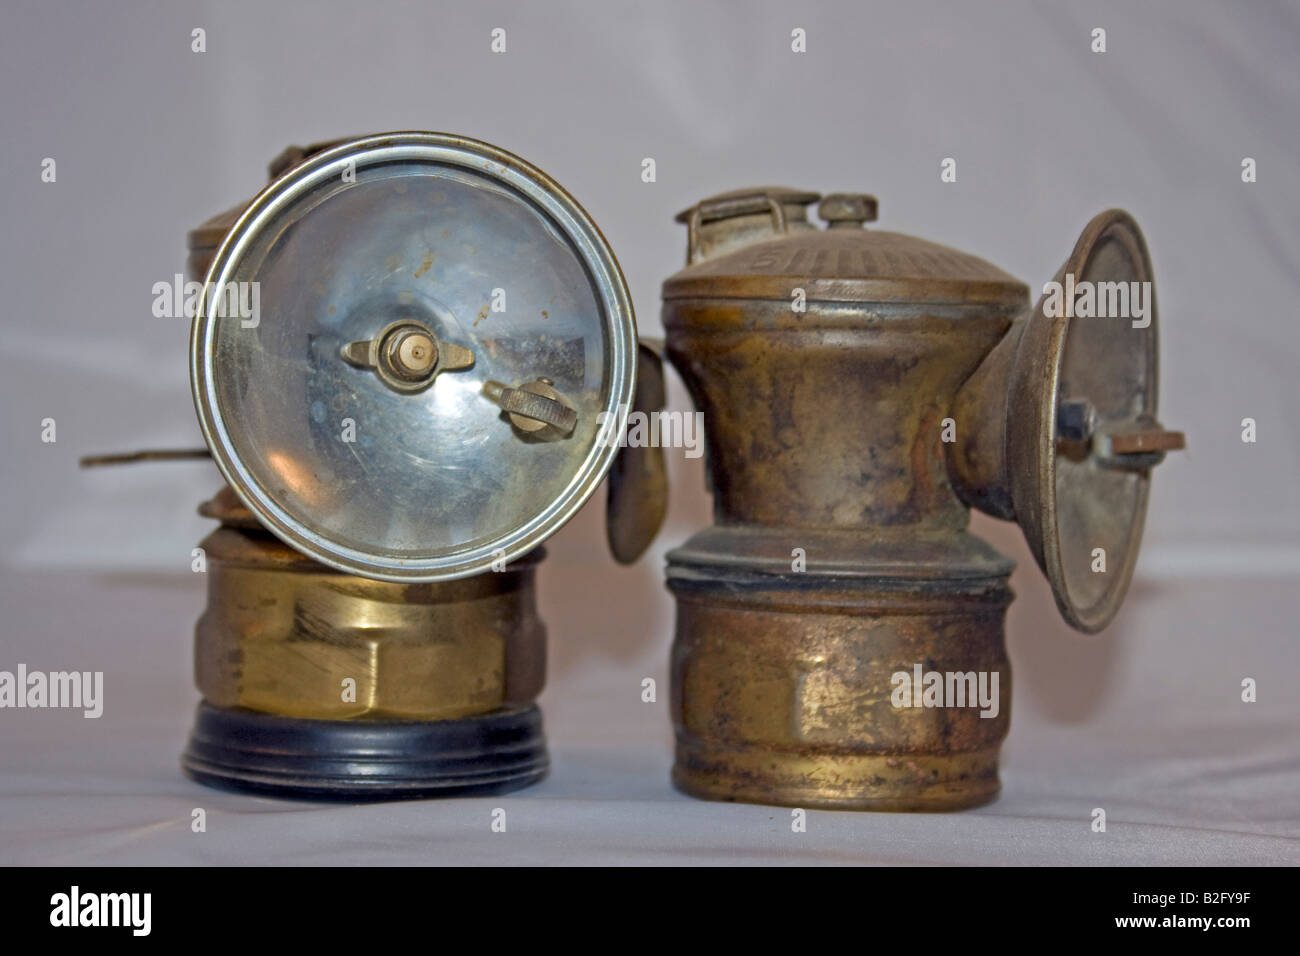 Awesome Silo Miners Carbide Lamp.   Stock Image